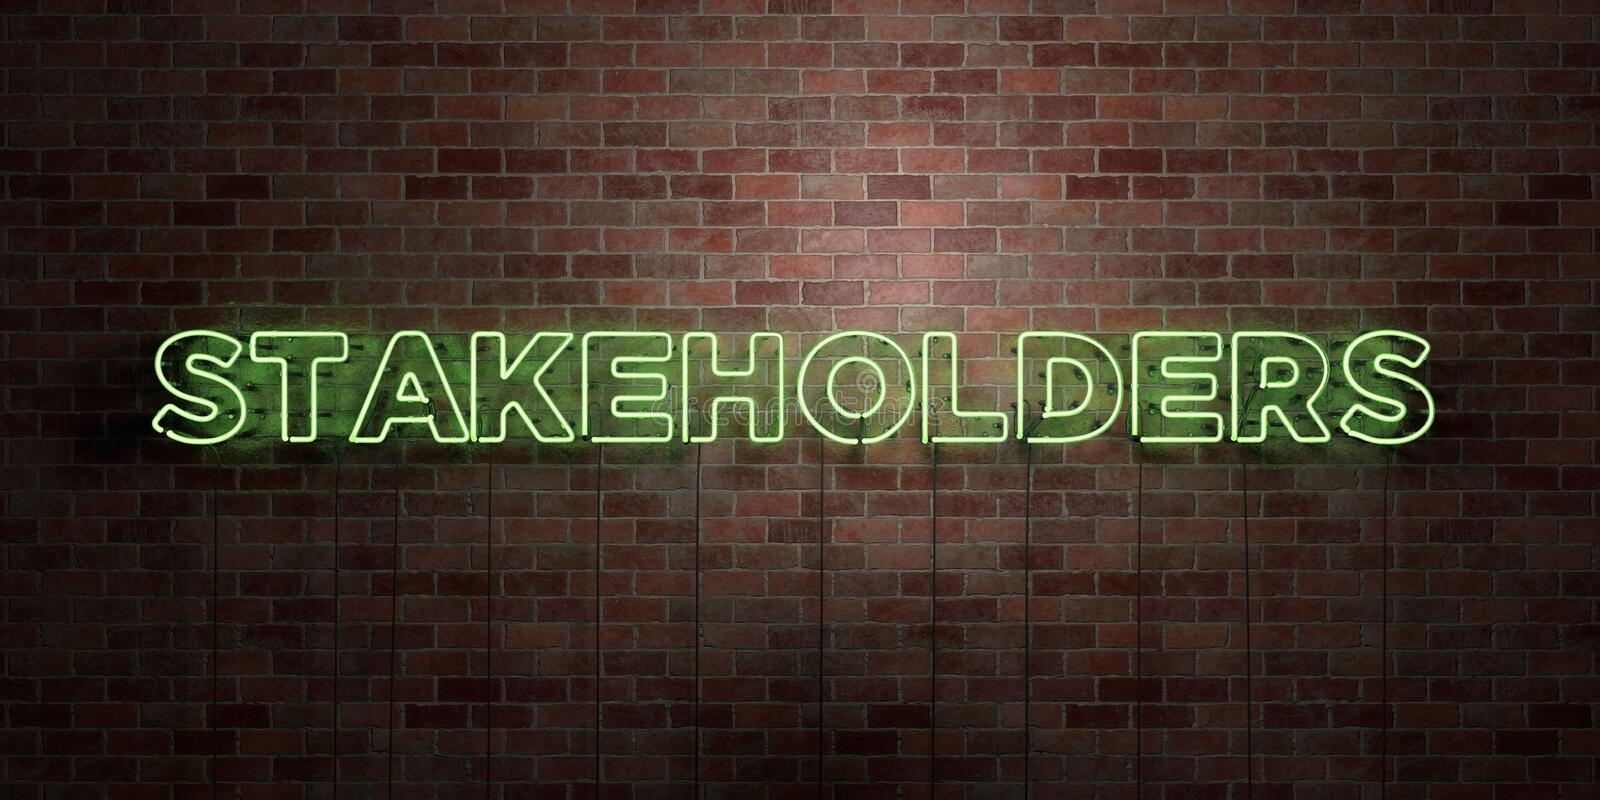 STAKEHOLDERS - fluorescent Neon tube Sign on brickwork - Front view - 3D rendered royalty free stock picture. Can be used for online banner ads and direct stock illustration